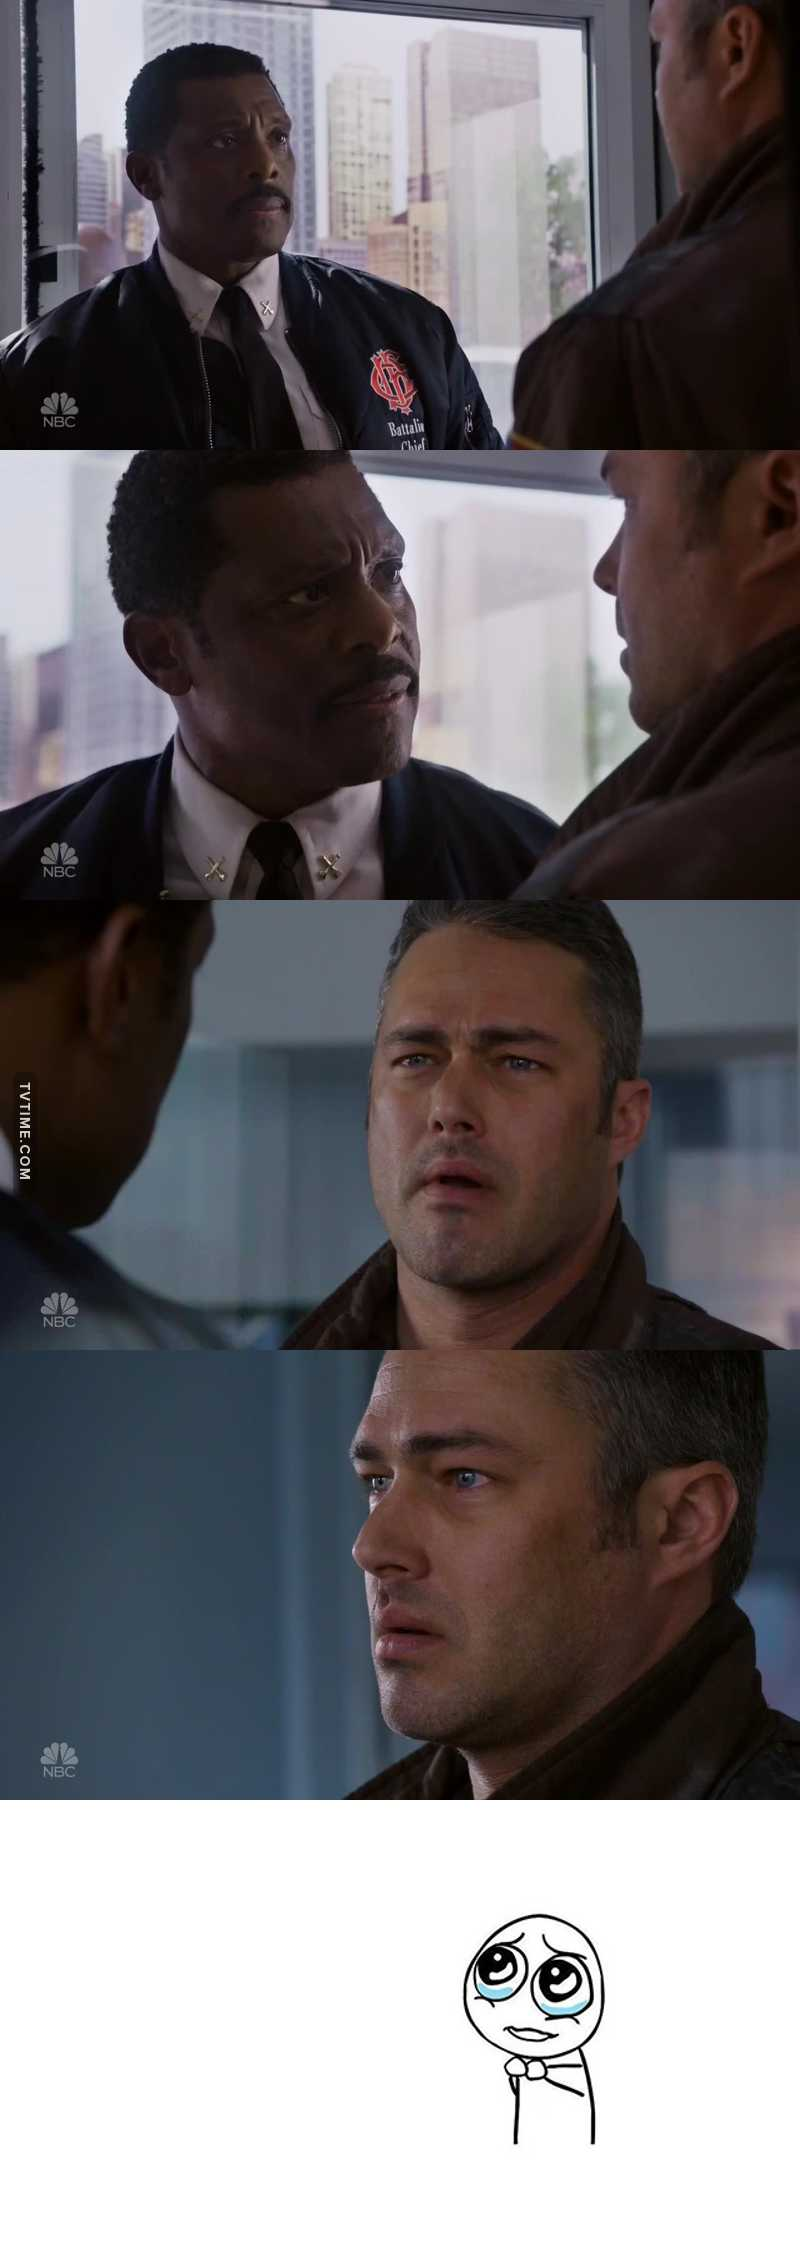 Can we please talk about this moment 😢😢 Boden: You tell me what the hell you were thinking when you ran back inside that building Severide: I can't go through this again